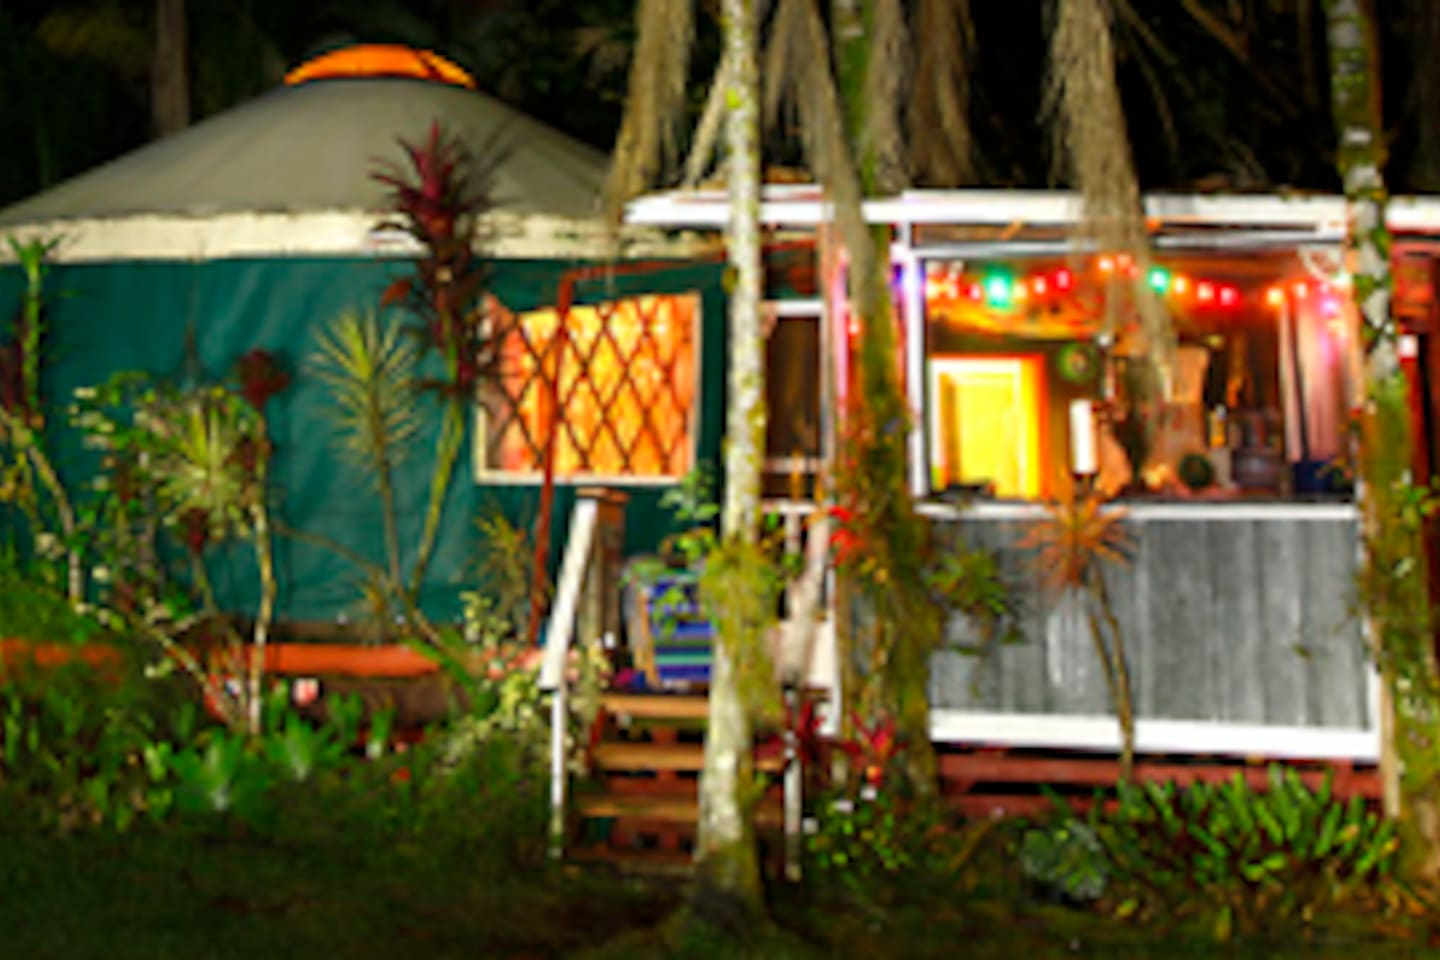 Eucalyptus Yurt at night